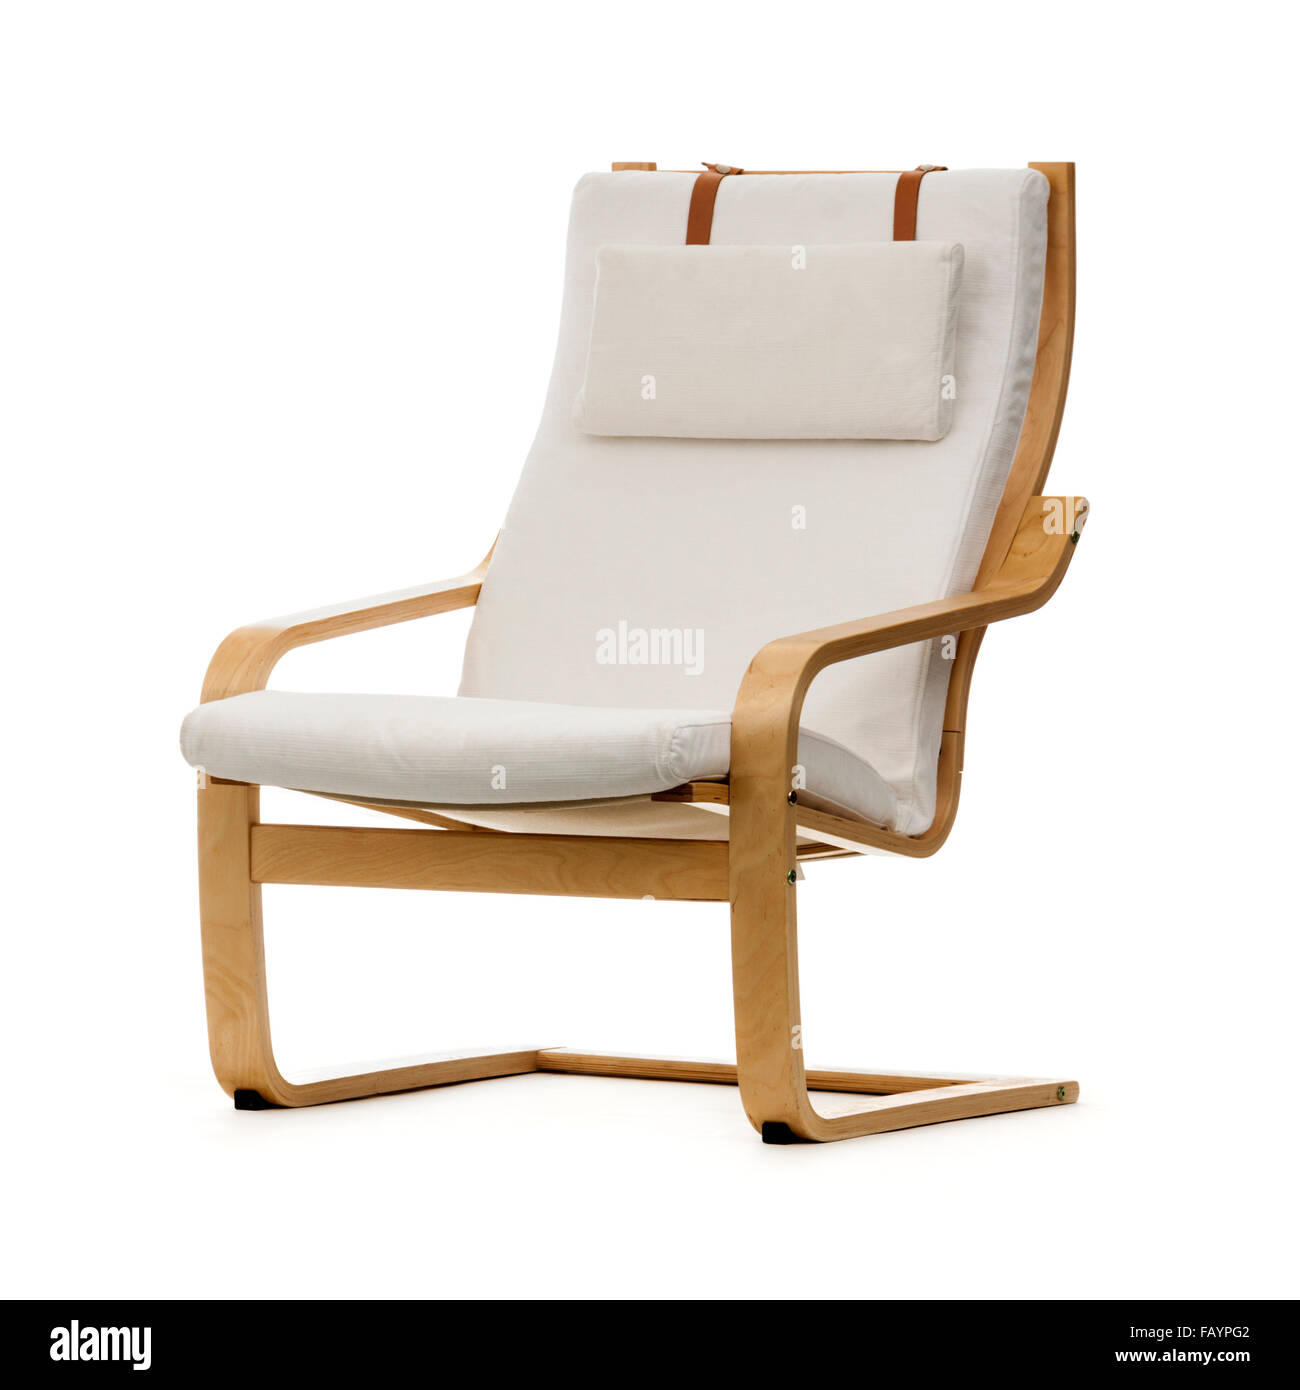 Ikea POÄNG Chair, Introduced In 1977 As The POEM And Renamed To POÄNG In  1992